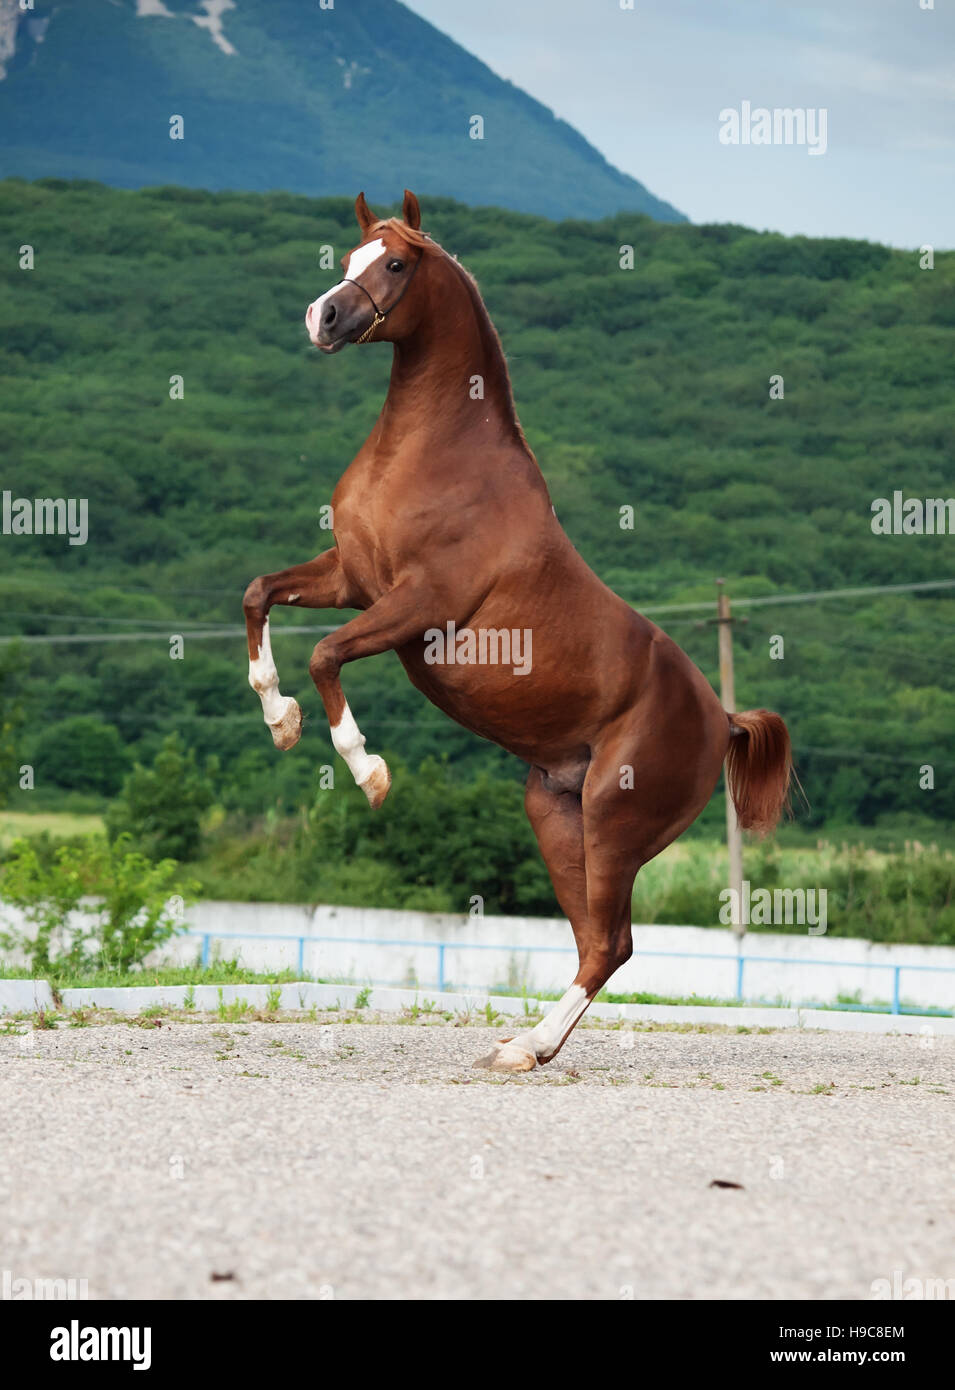 arabian chestnut stallion rearing. at mountain background - Stock Image